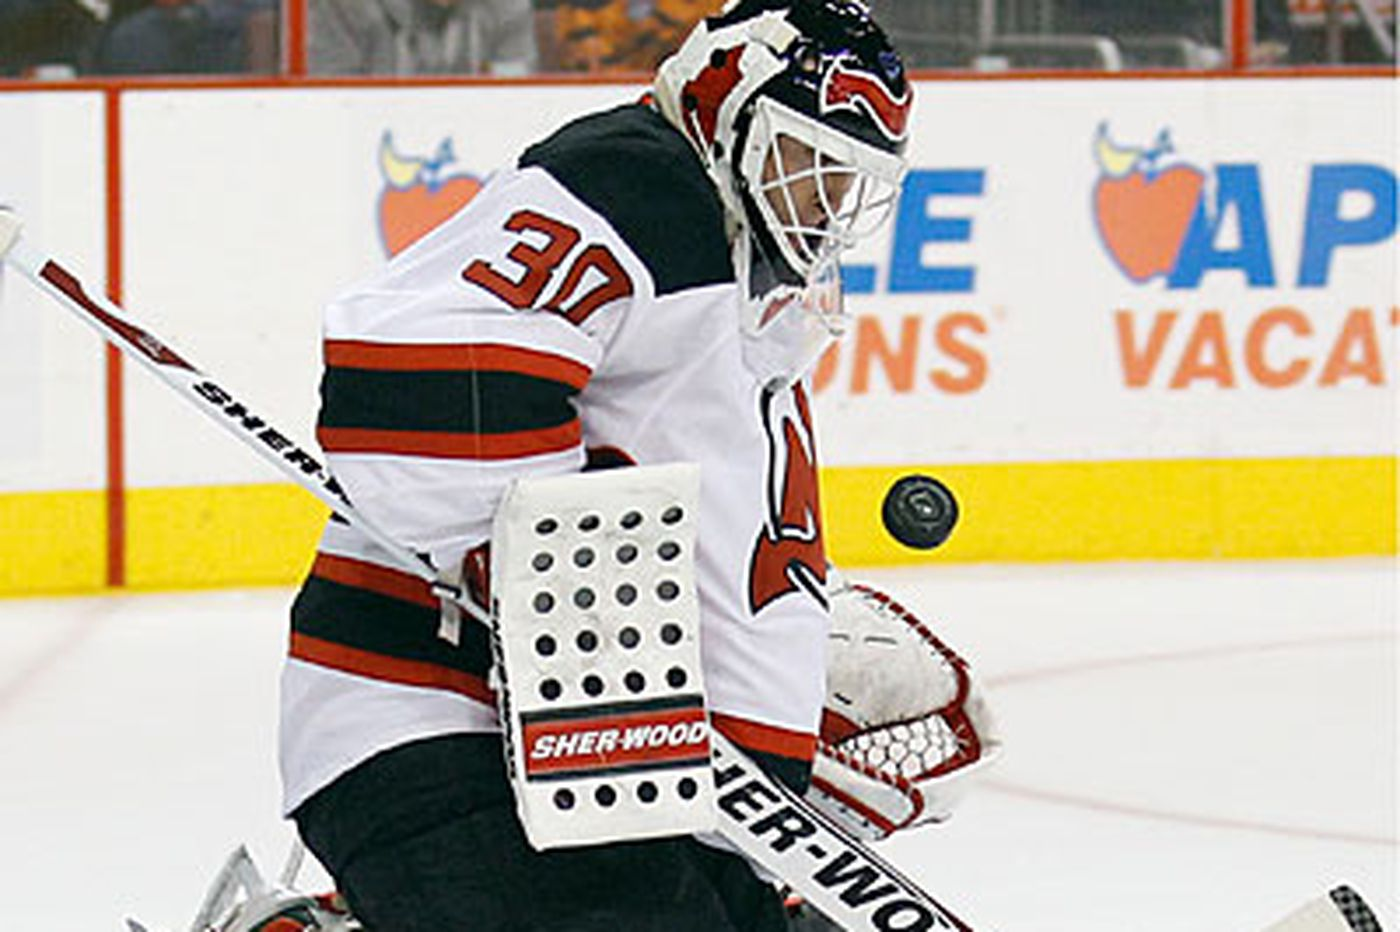 Inside the Flyers: Flyers give veteran goalie Brodeur respect